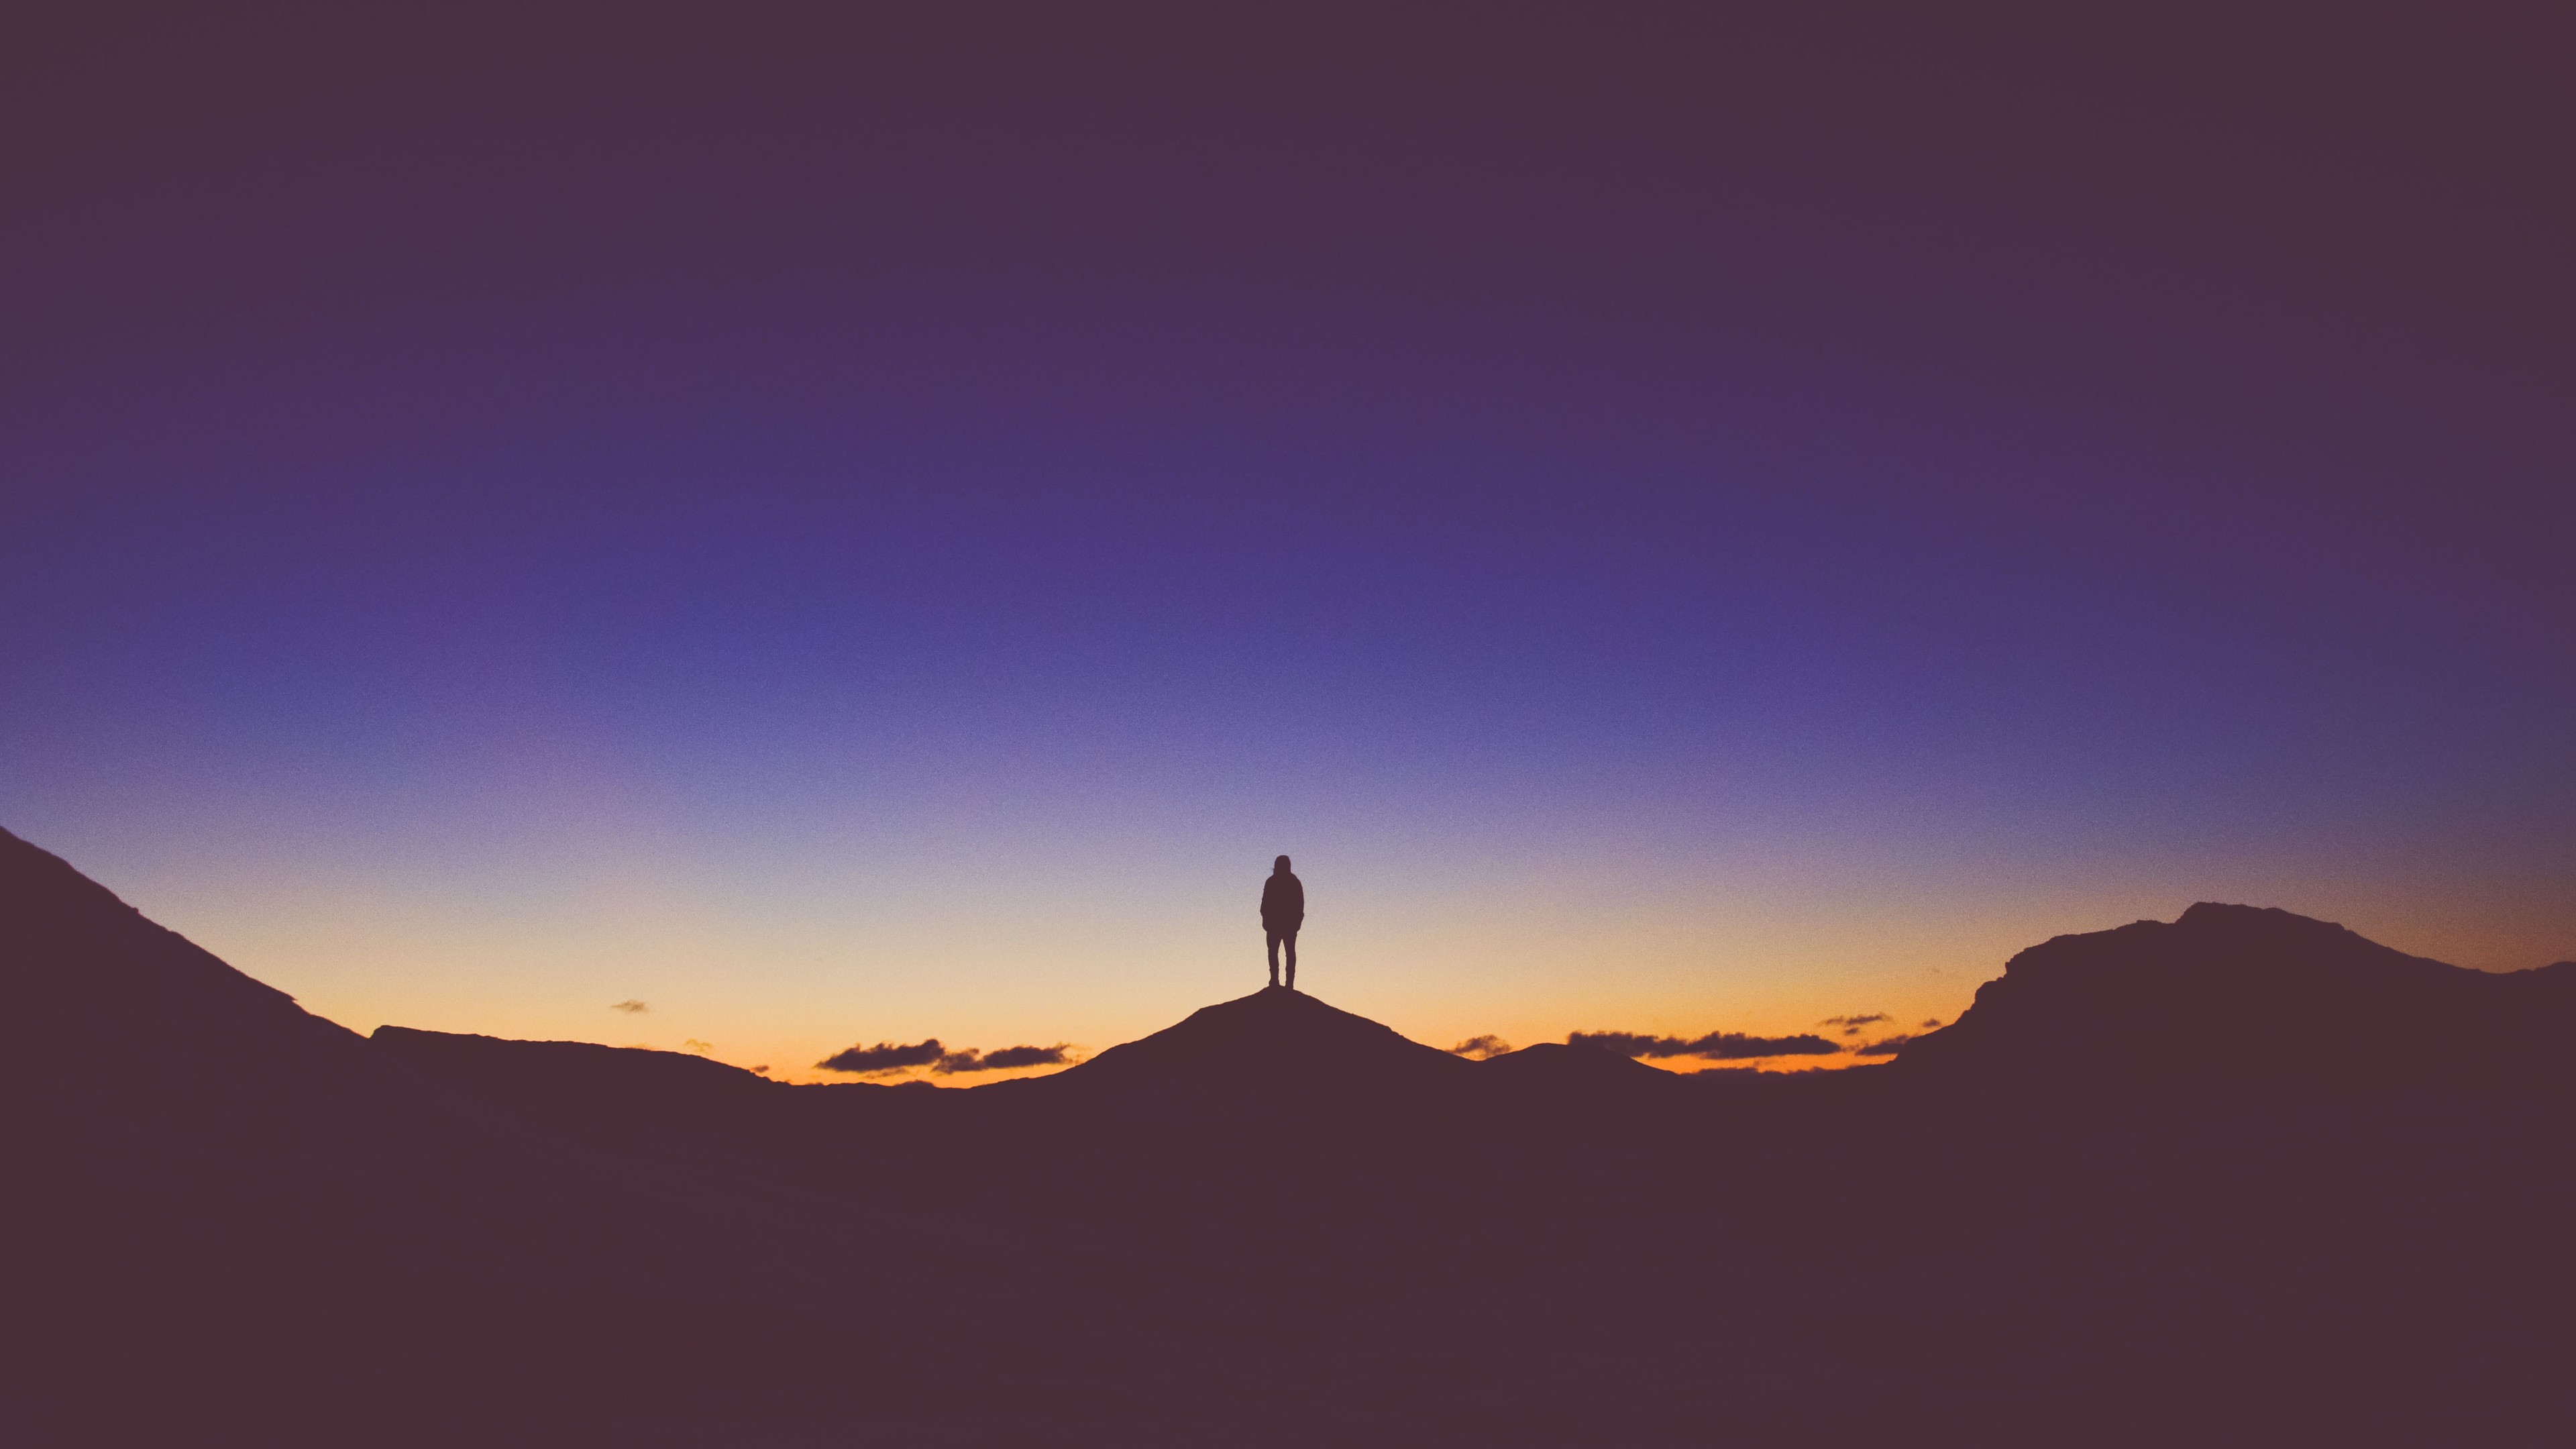 Wallpaper 4k Person Standing Mountain Watching View Silhouette